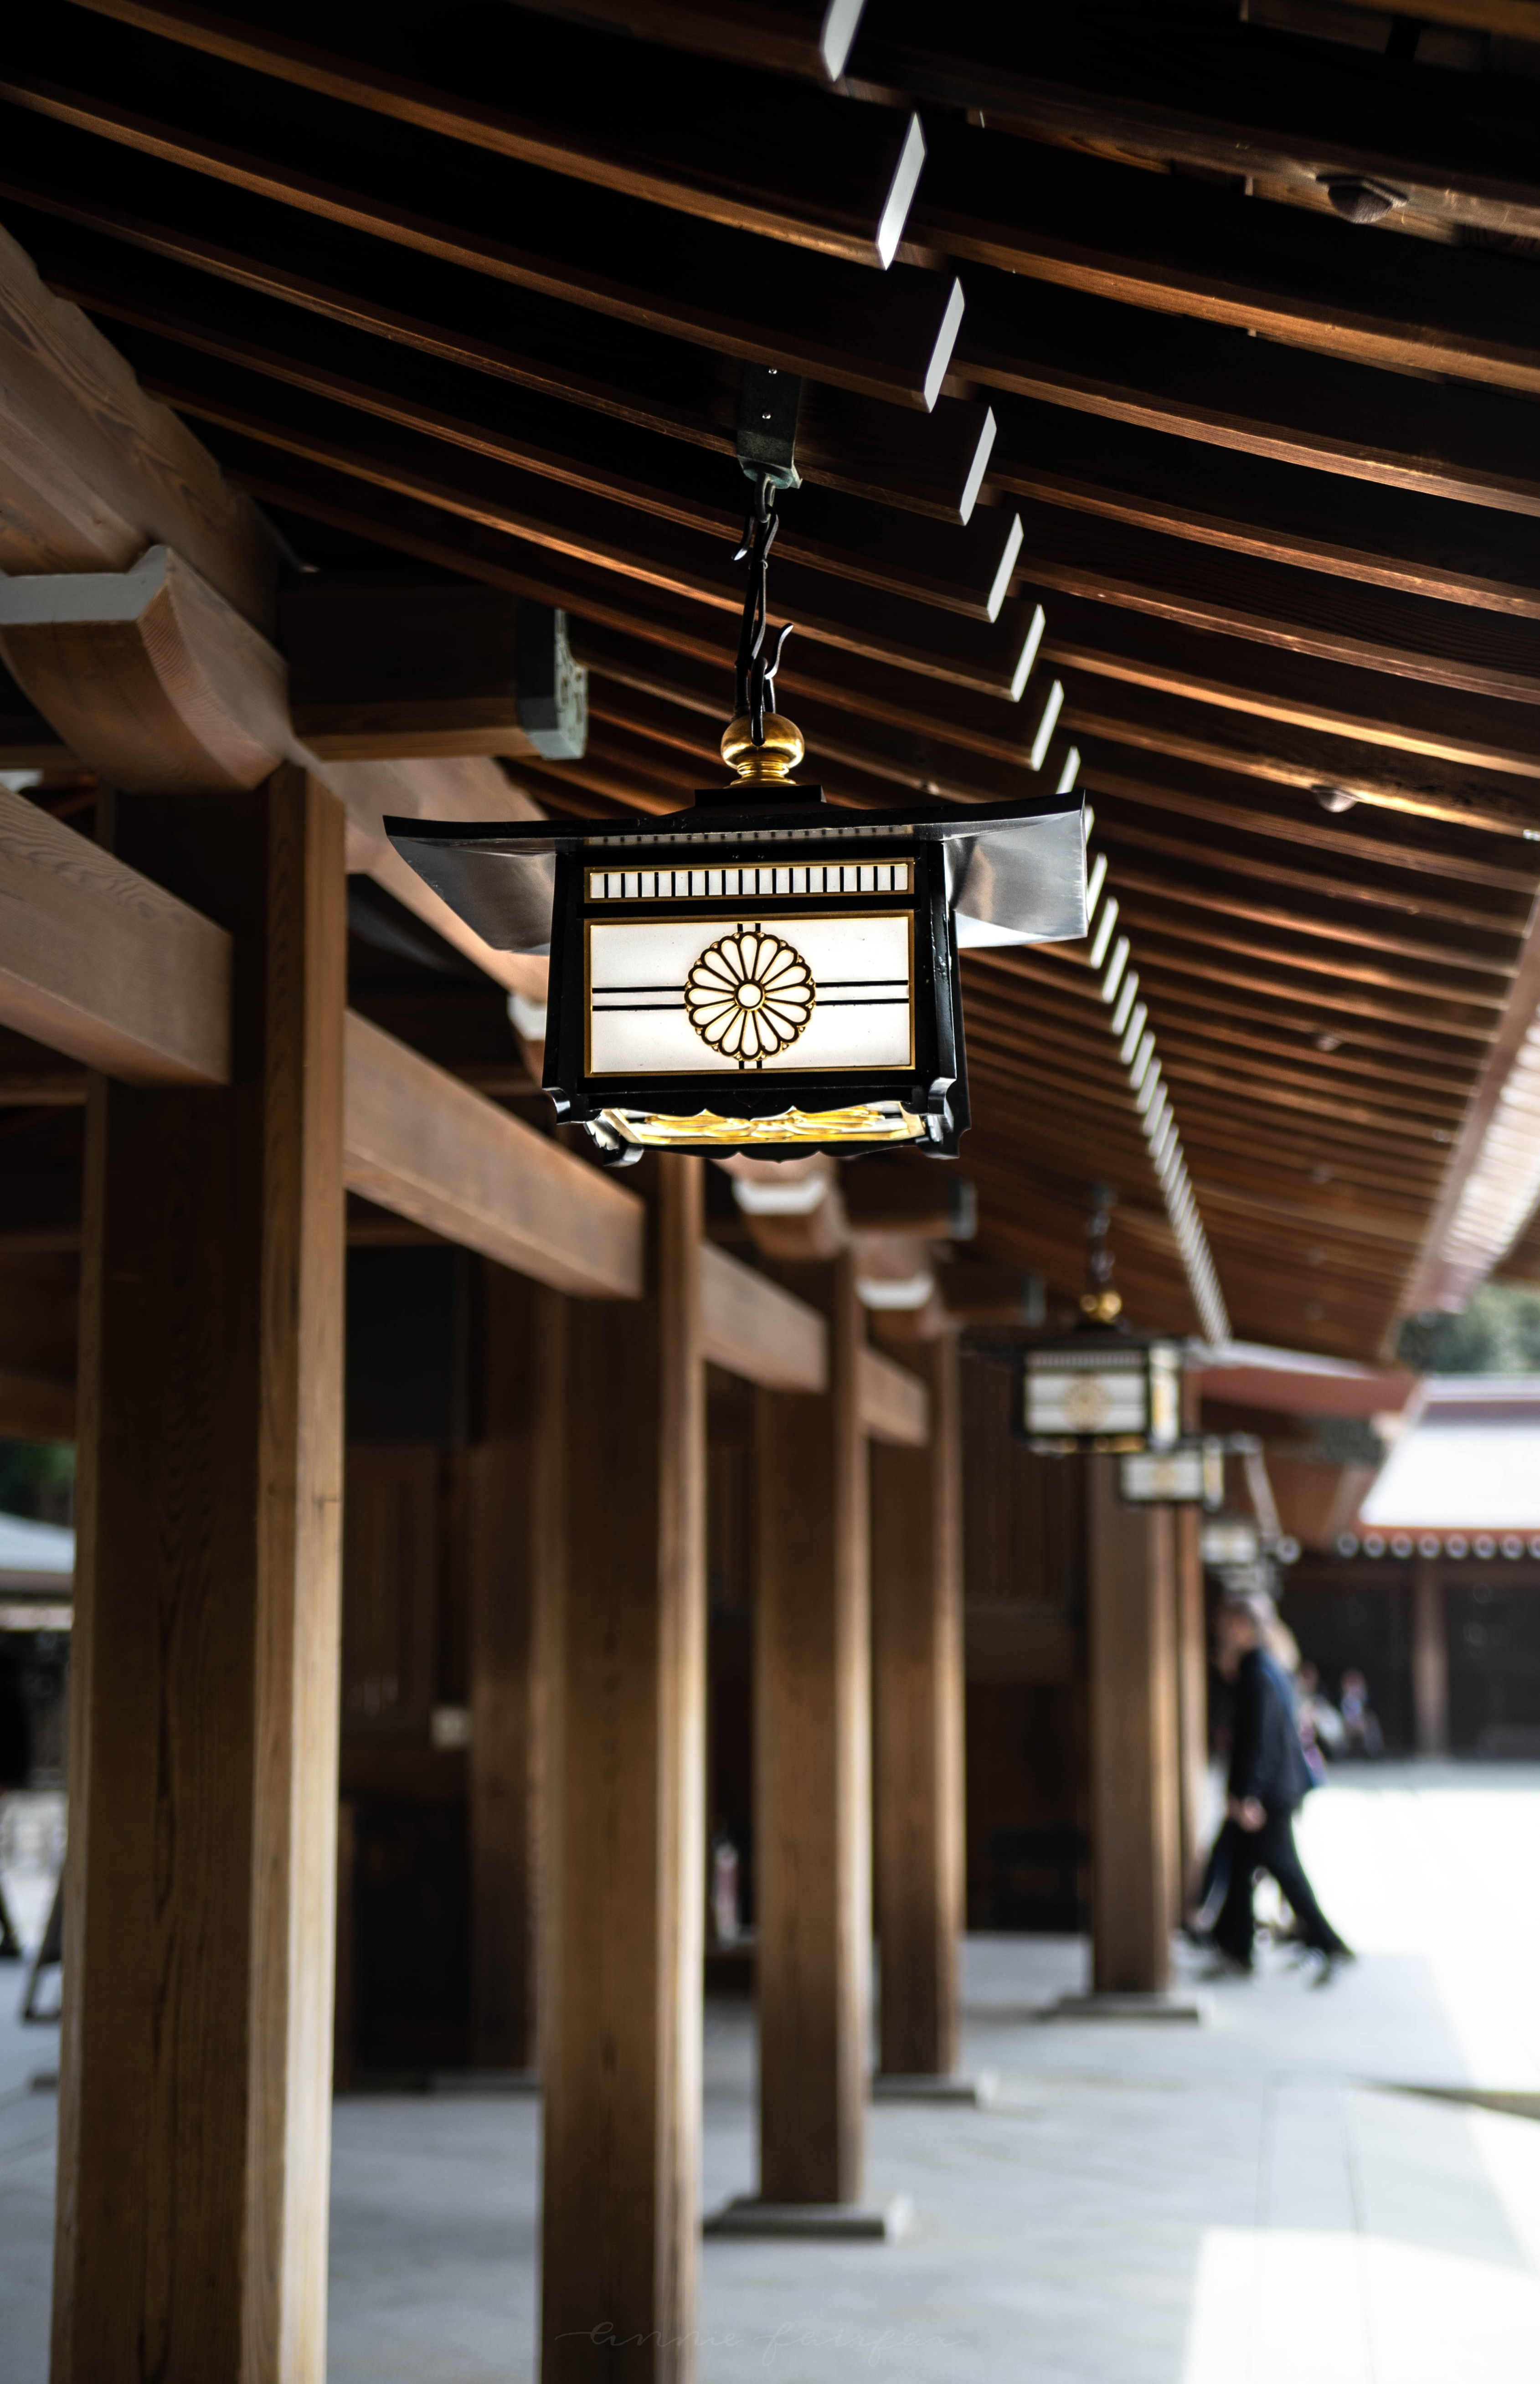 Meiji Temple and Shrine Tokyo, Japan: The Official Travel Guide Photographed, Researched, and Written by Annie Fairfax What to Do in Japan, Where to Eat in Tokyo, What to do in Tokyo, Things to Do in Tokyo, Tokyo Tourism, Places to Stay in Tokyo Tokyo Luxury Travel